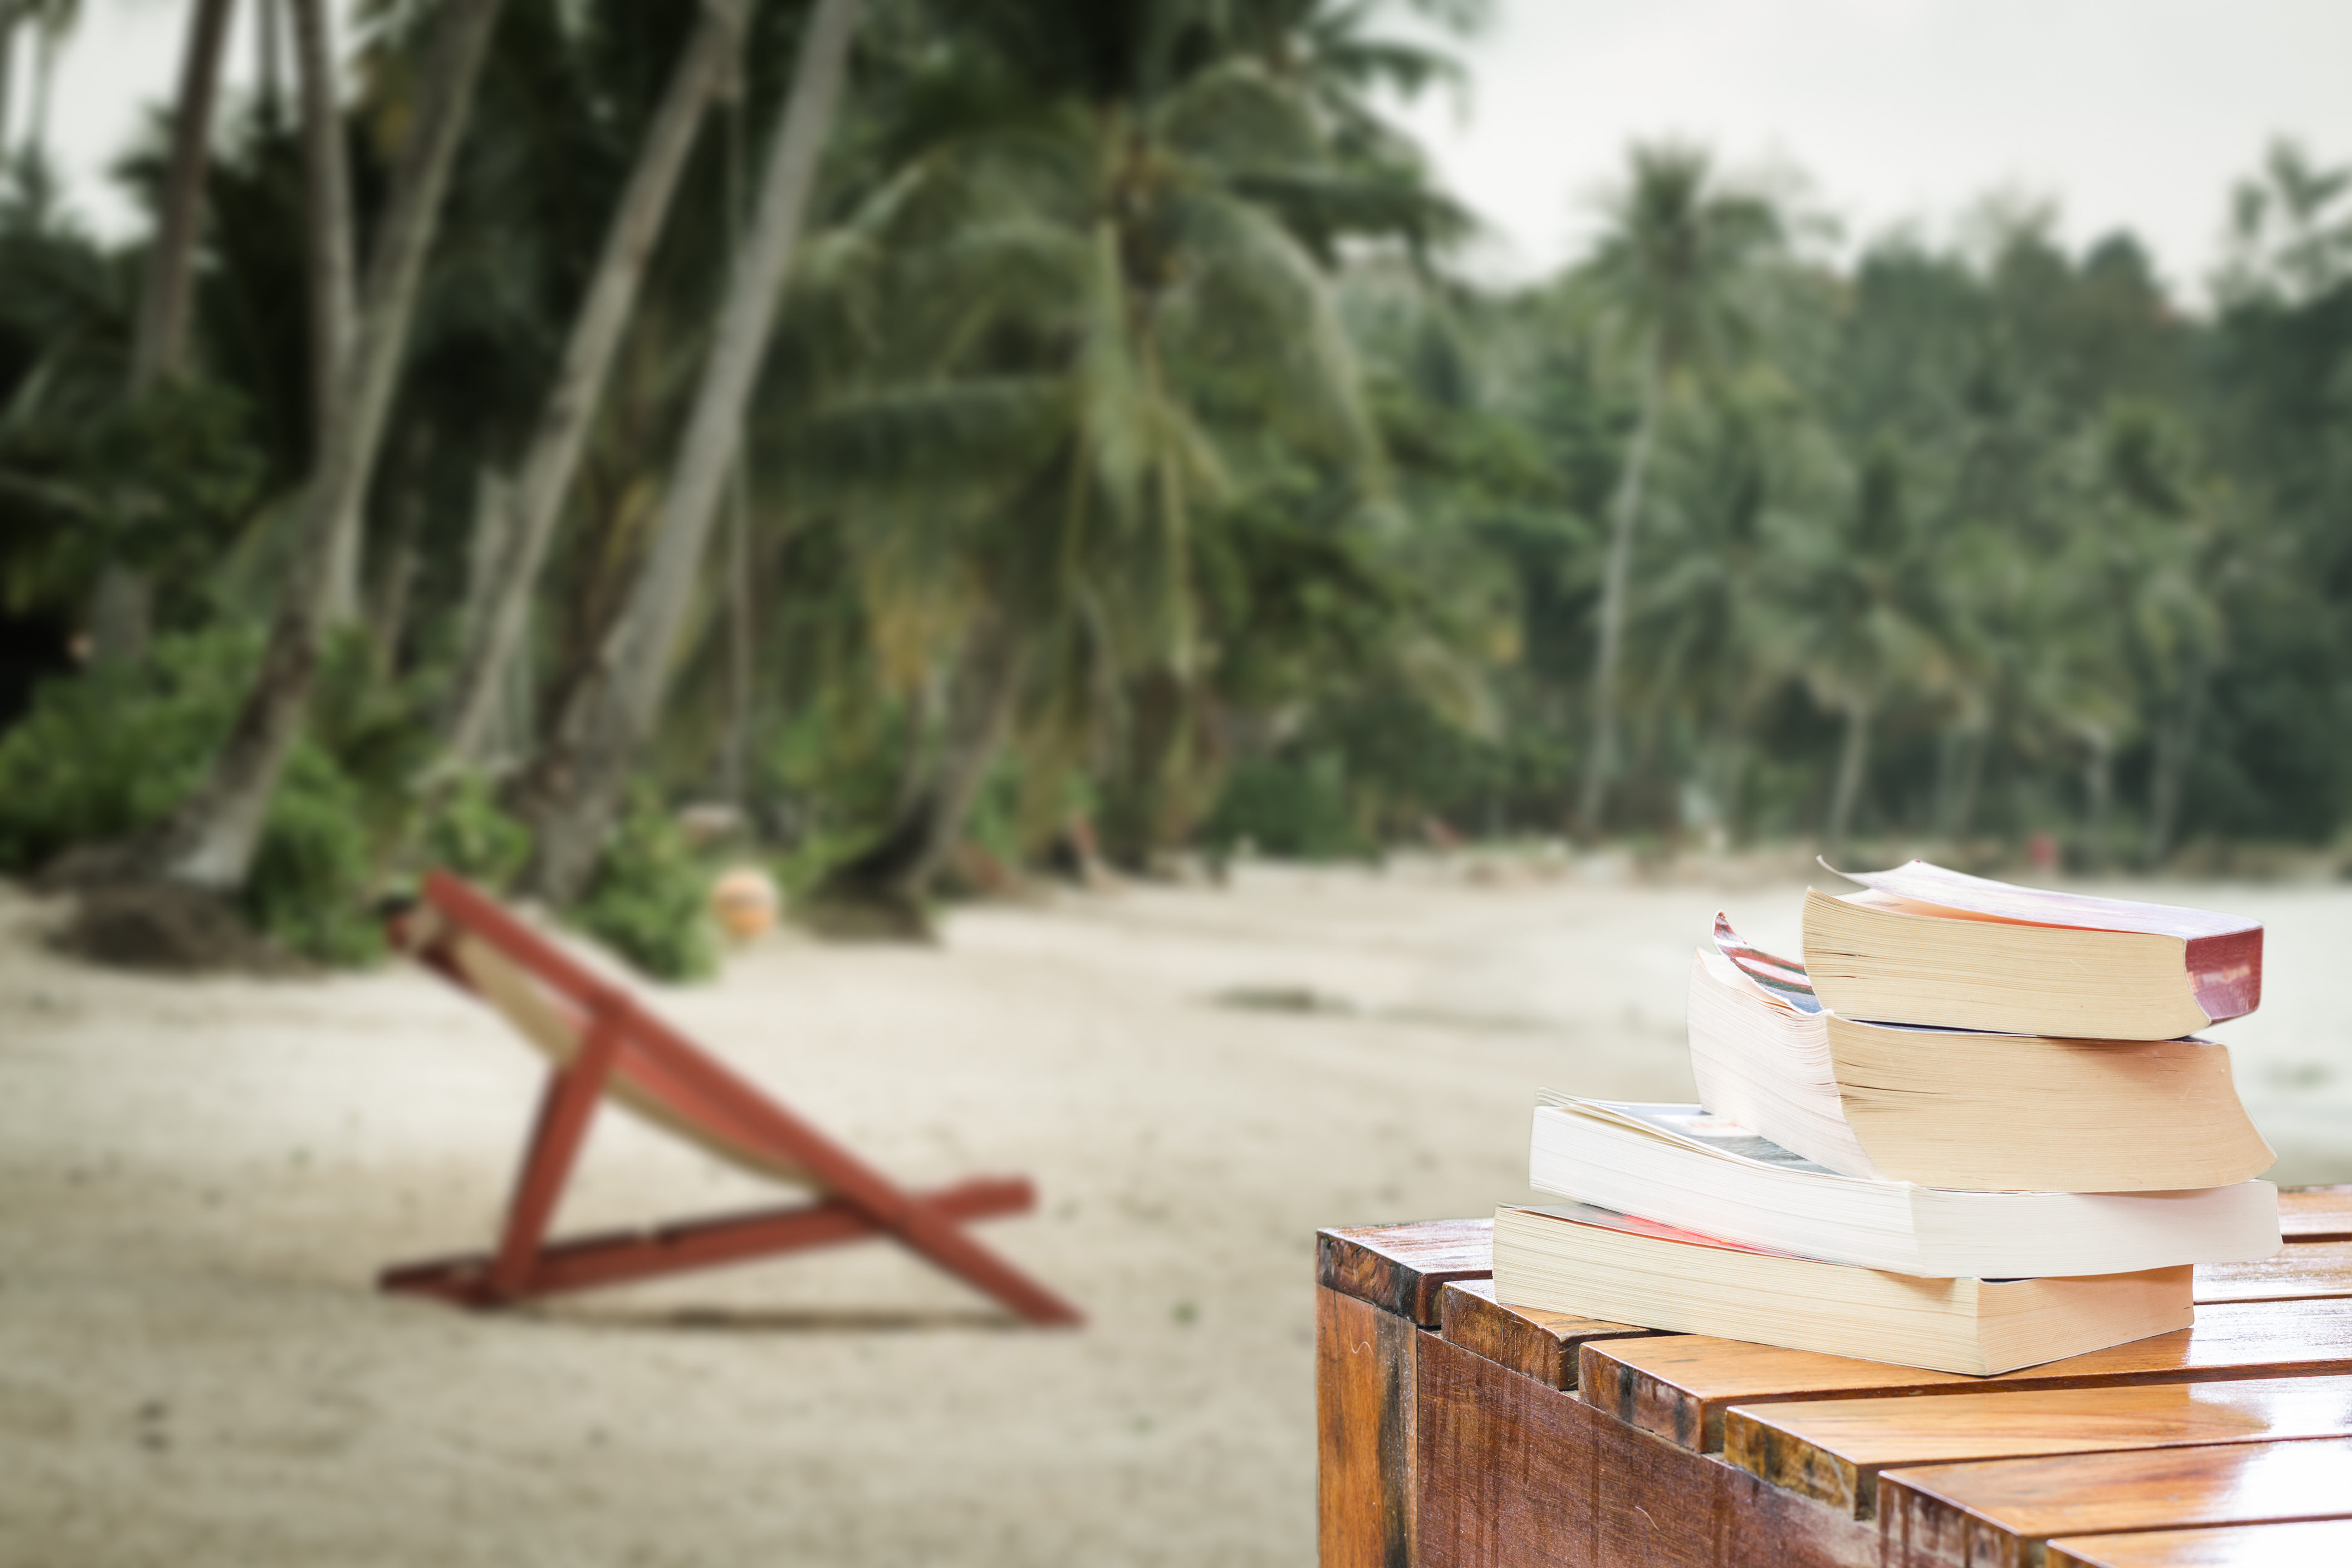 pile of books on wood table at the beach